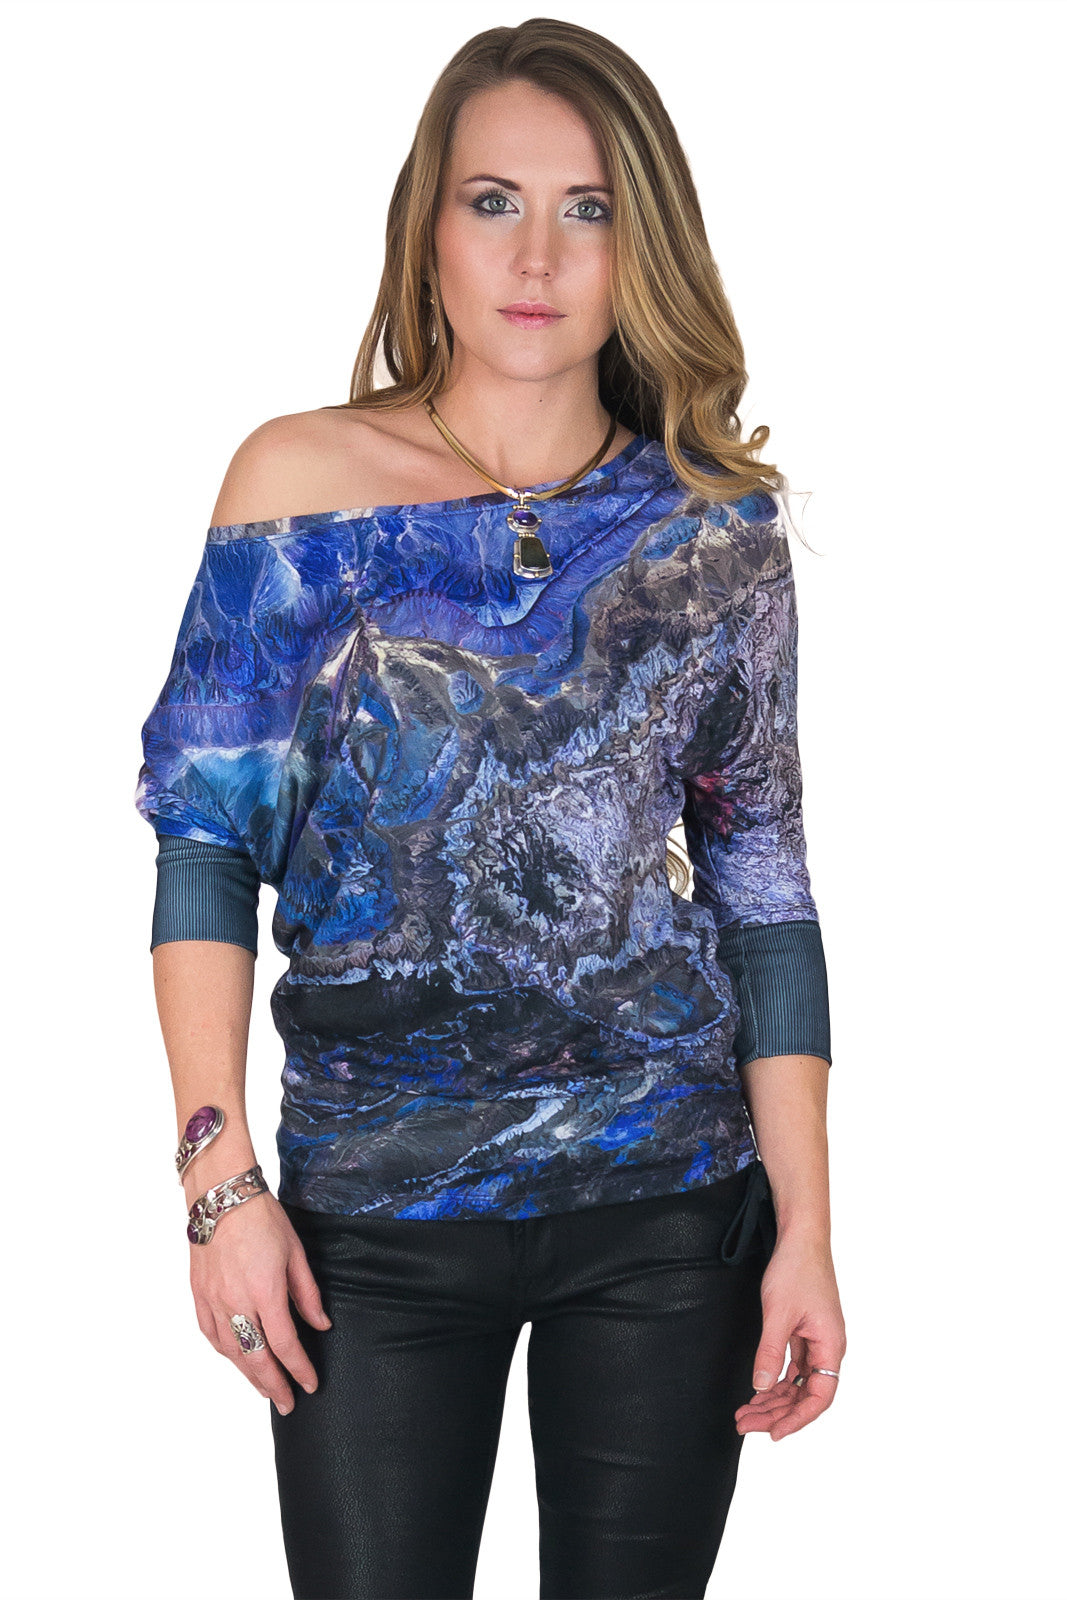 Dolman Top-Visionary Art Clothing-Atlas Mountains